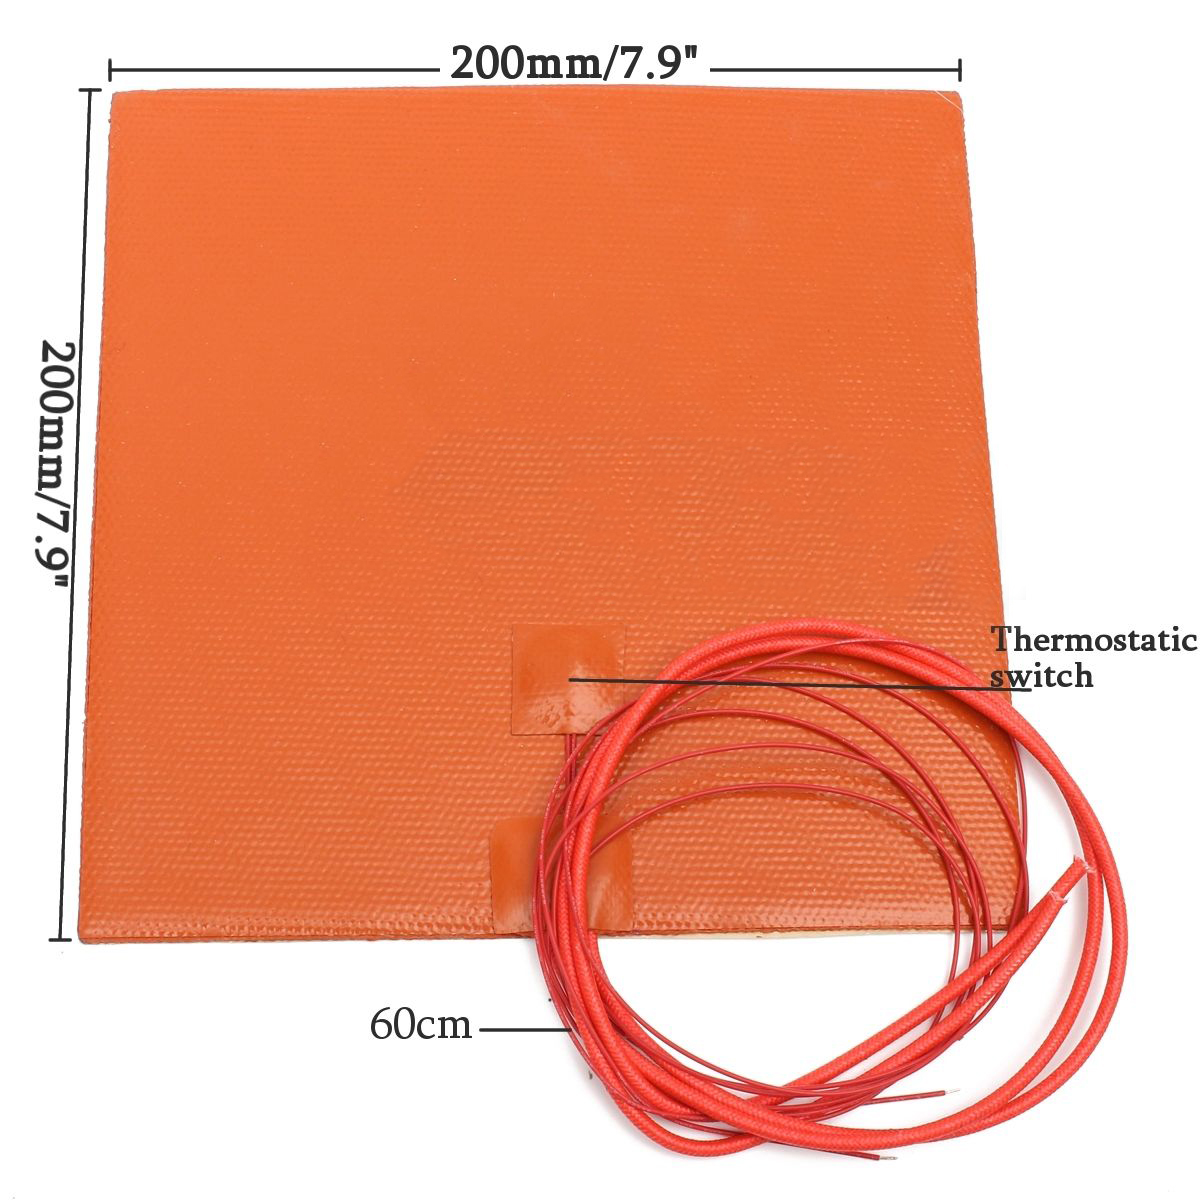 Fast Heating 200W 12V Silicone Heater Pad For 3D Printer Duplicating Machines Heated Bed Orange Heating Mat Repair Tools Mayitr flsun 3d printer big pulley kossel 3d printer with one roll filament sd card fast shipping